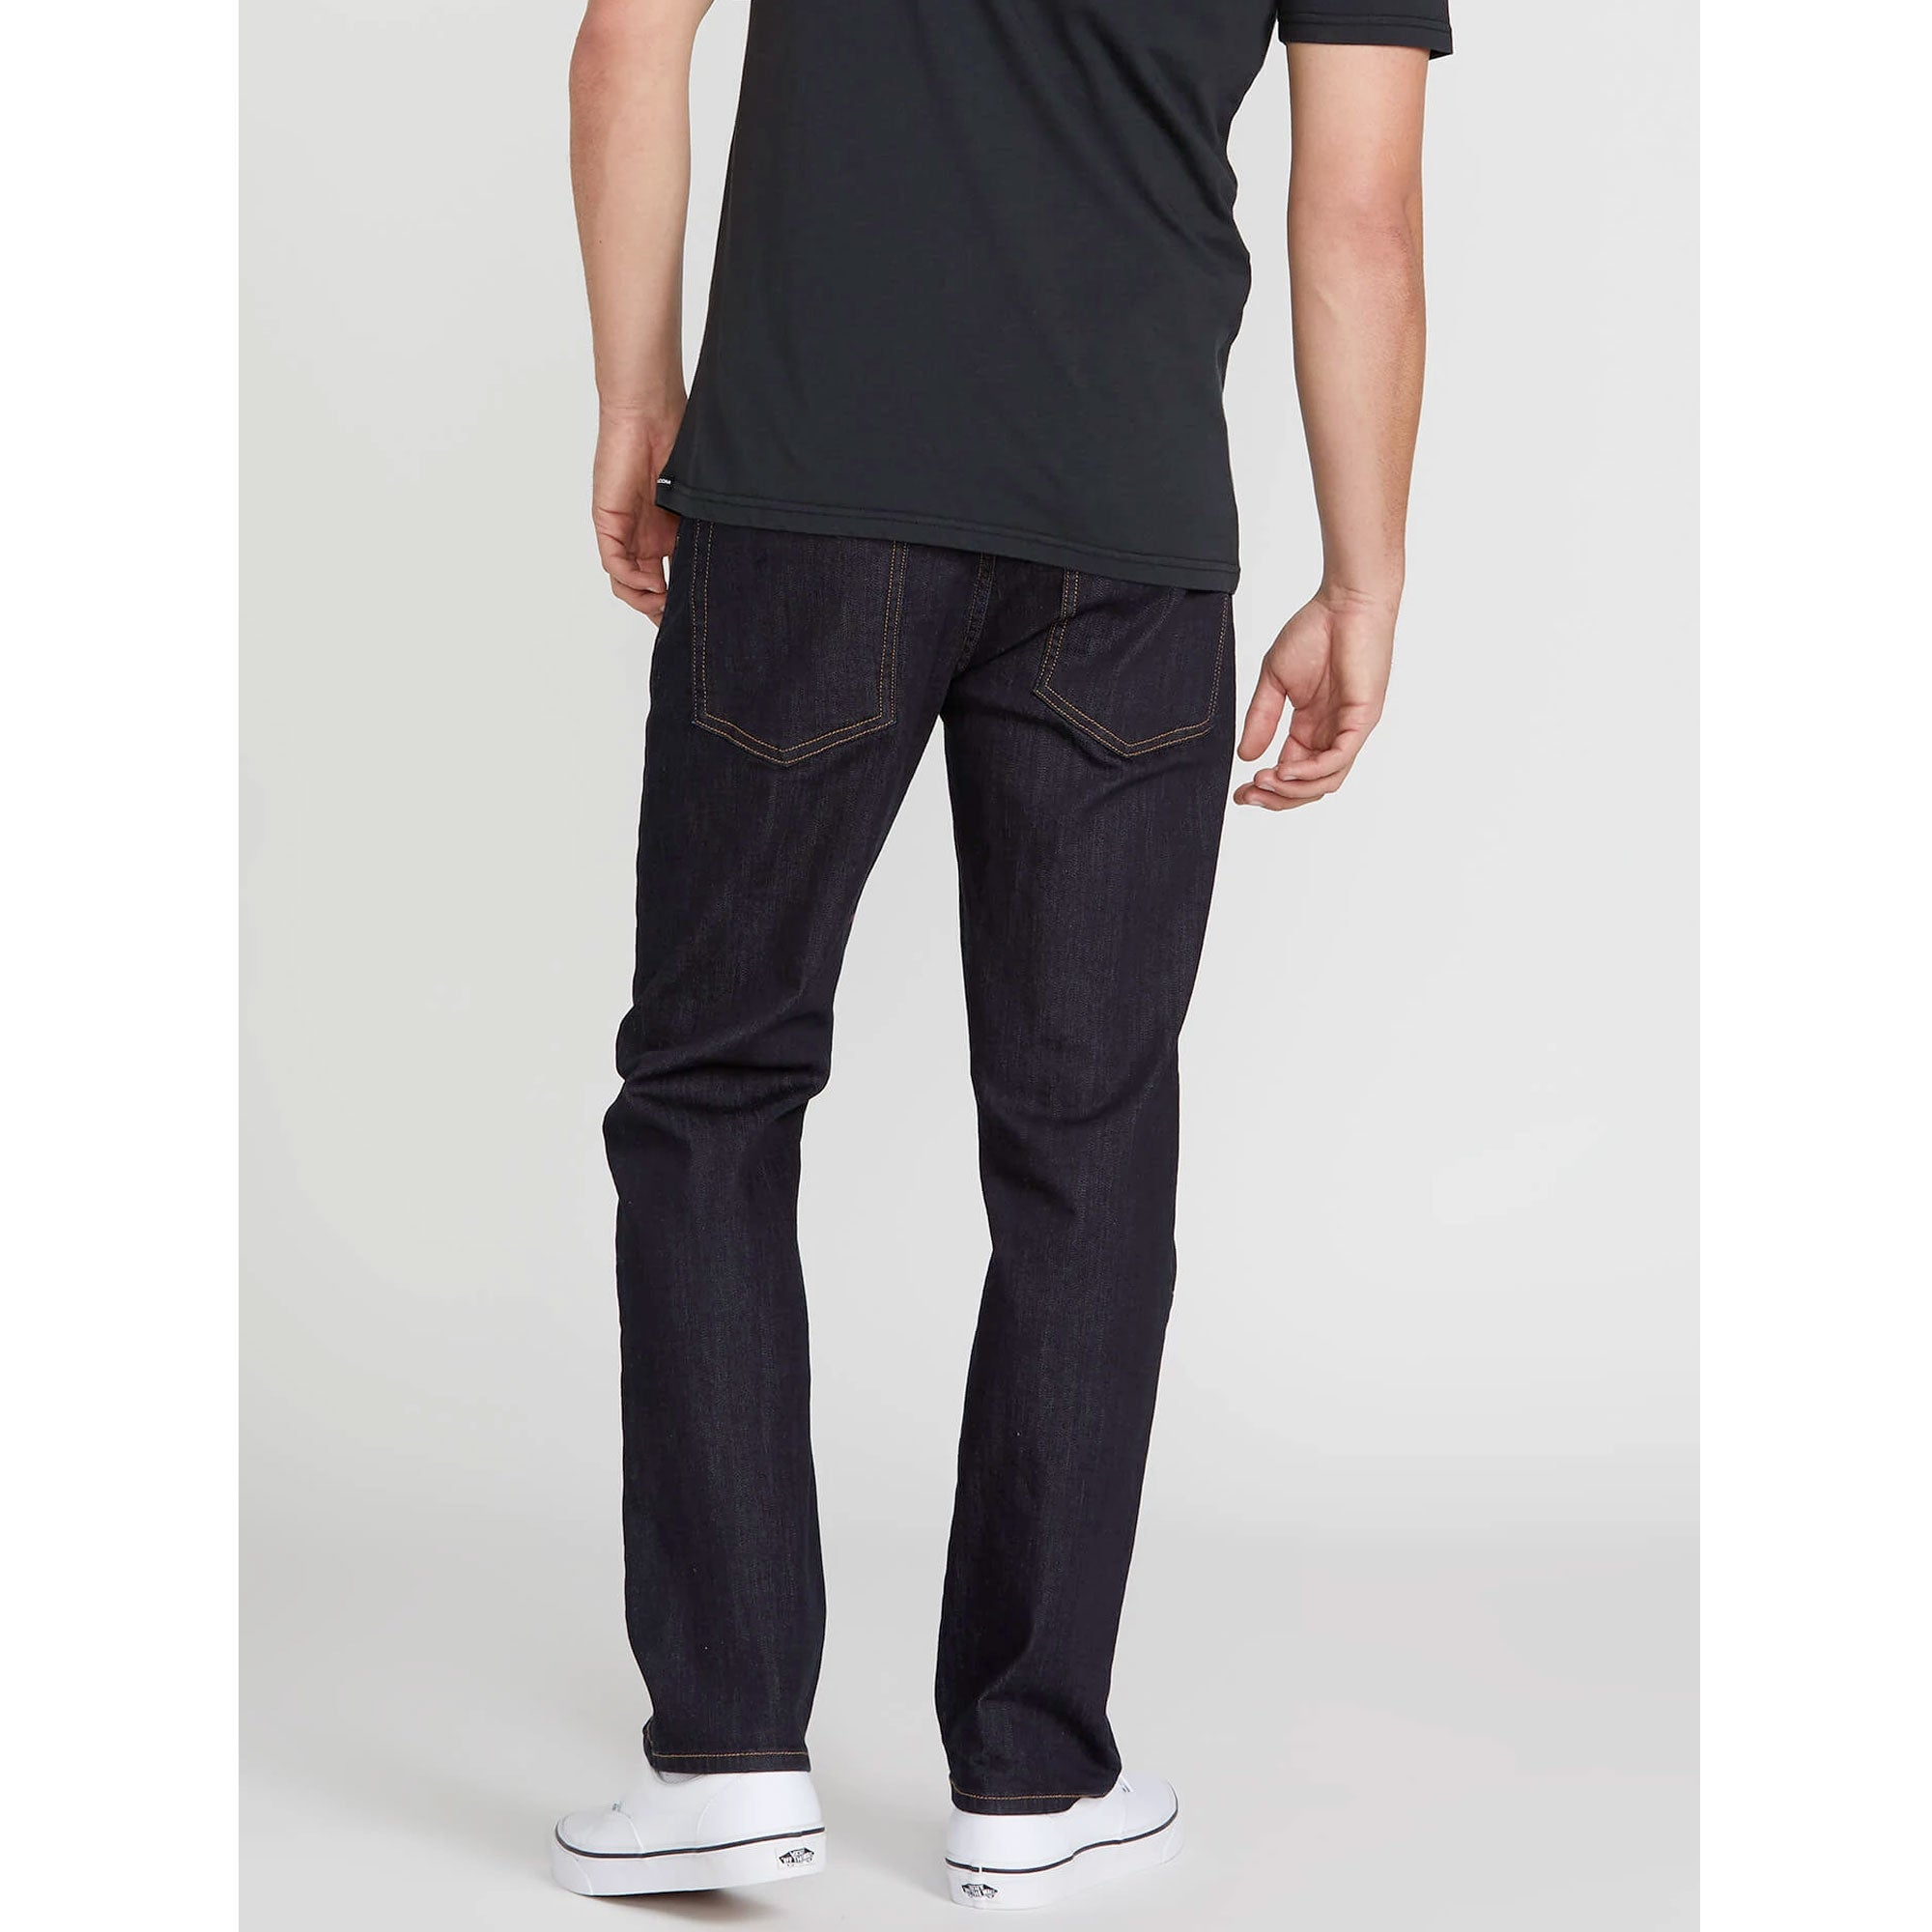 Volcom Solver Men's Denim Jeans